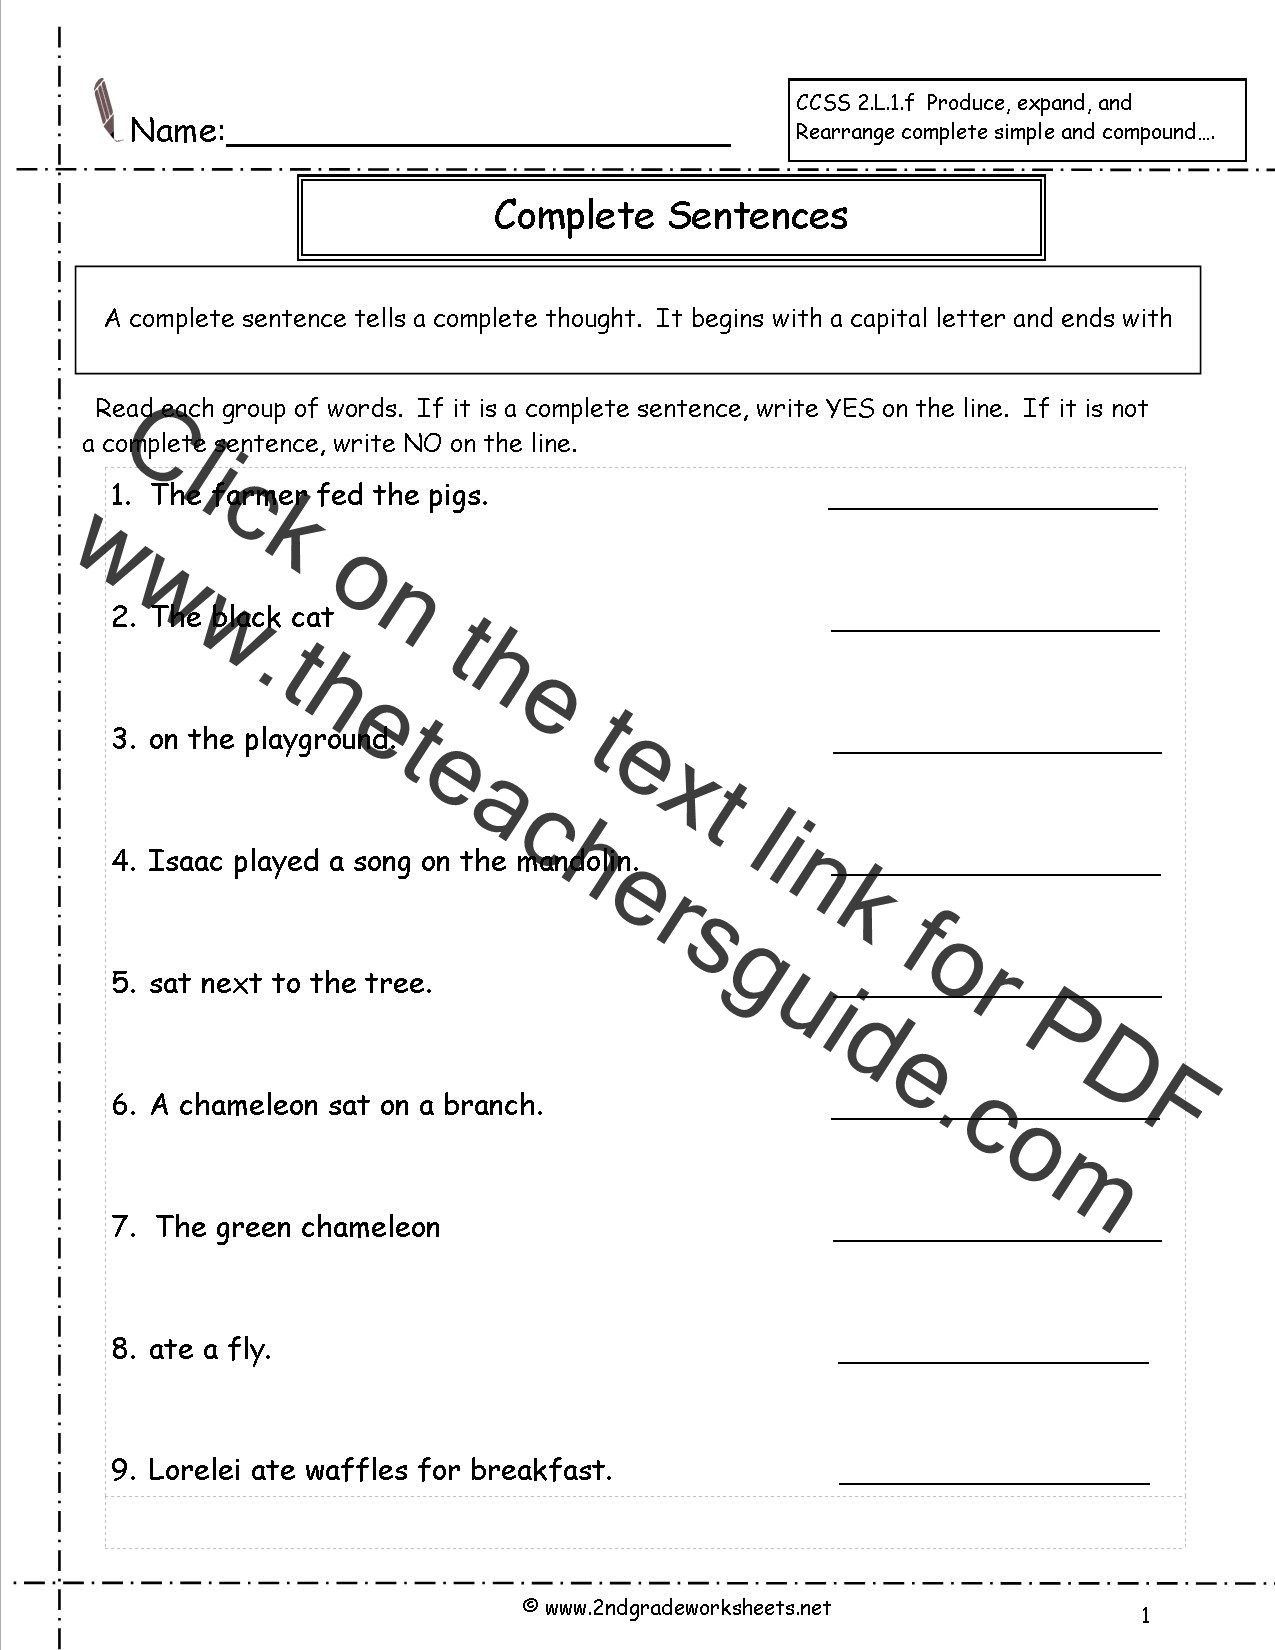 Complete Sentences Worksheets 1st Grade Second Grade Sentences Worksheets Ccss 2 L 1 F Worksheets